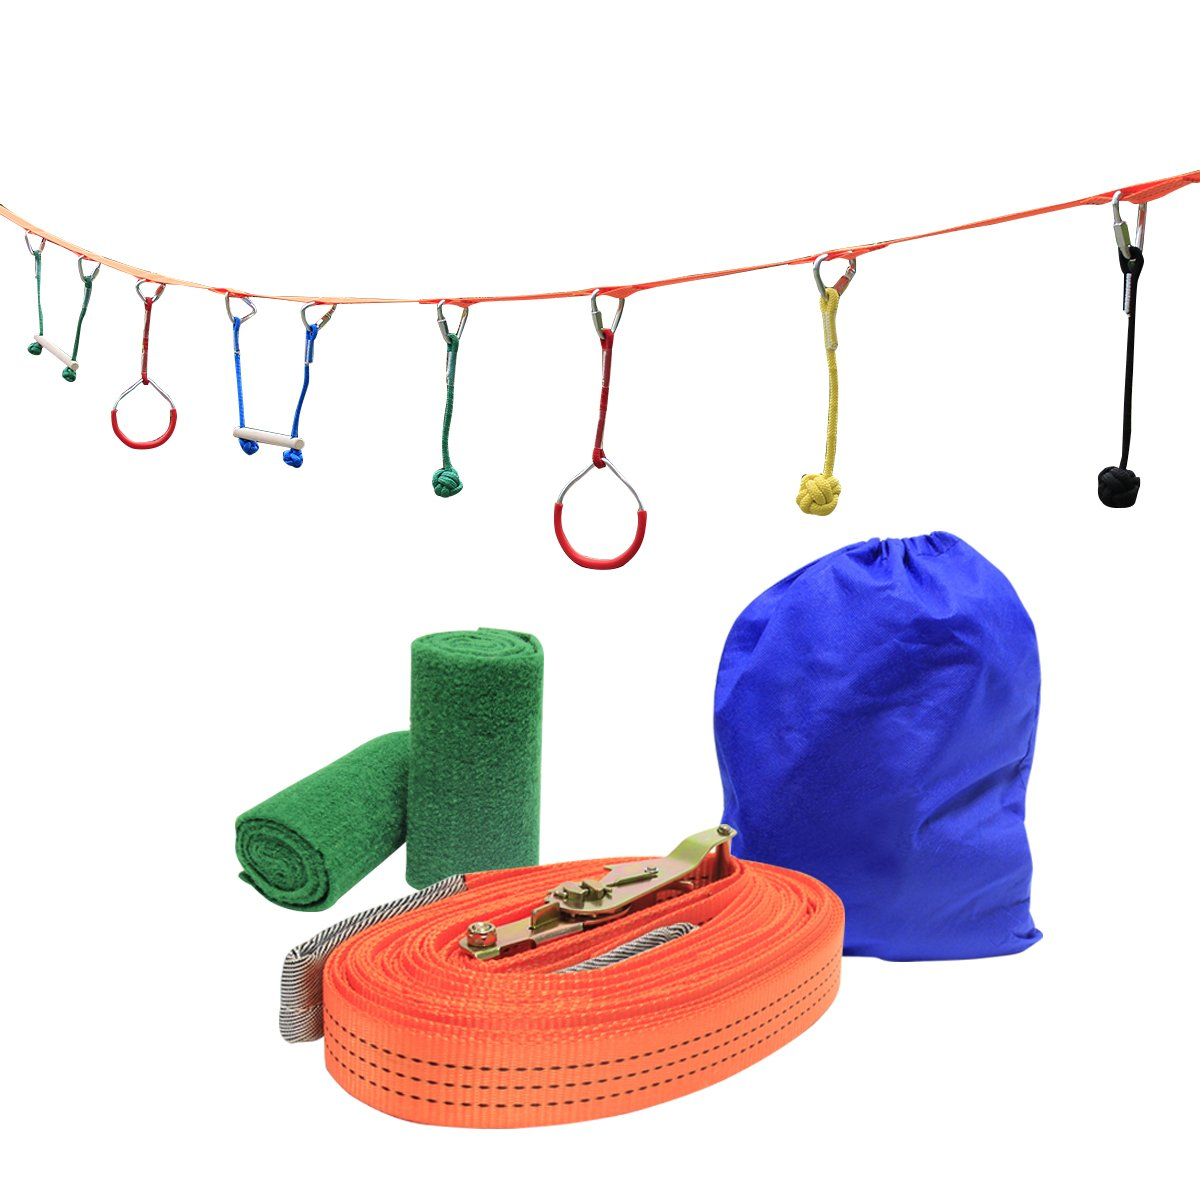 UBOWAY Ninja Hanging Obstacle Course Kit Obstacles Line Equipment Set for Kids with 46' Slackline, 2 Monkey Bars, 2 Gymnastics Rings, 3 Fists for Backyard, Playground (7 Obstacles)